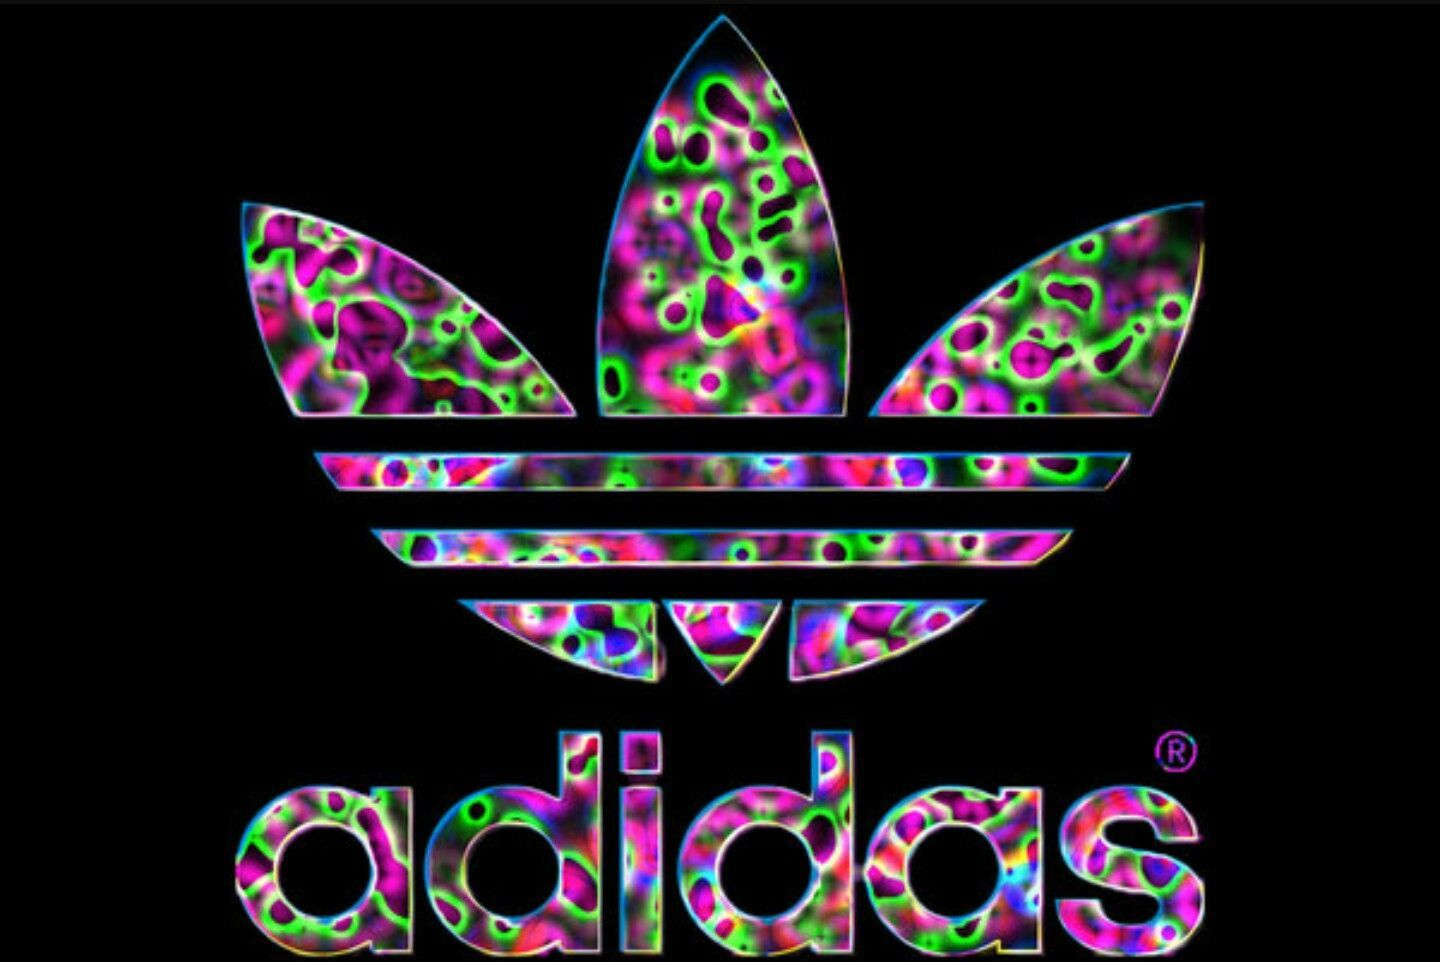 1440x962 Pin by Randall Price Jr. on Everything ADIDAS in 2019 | Neon ...